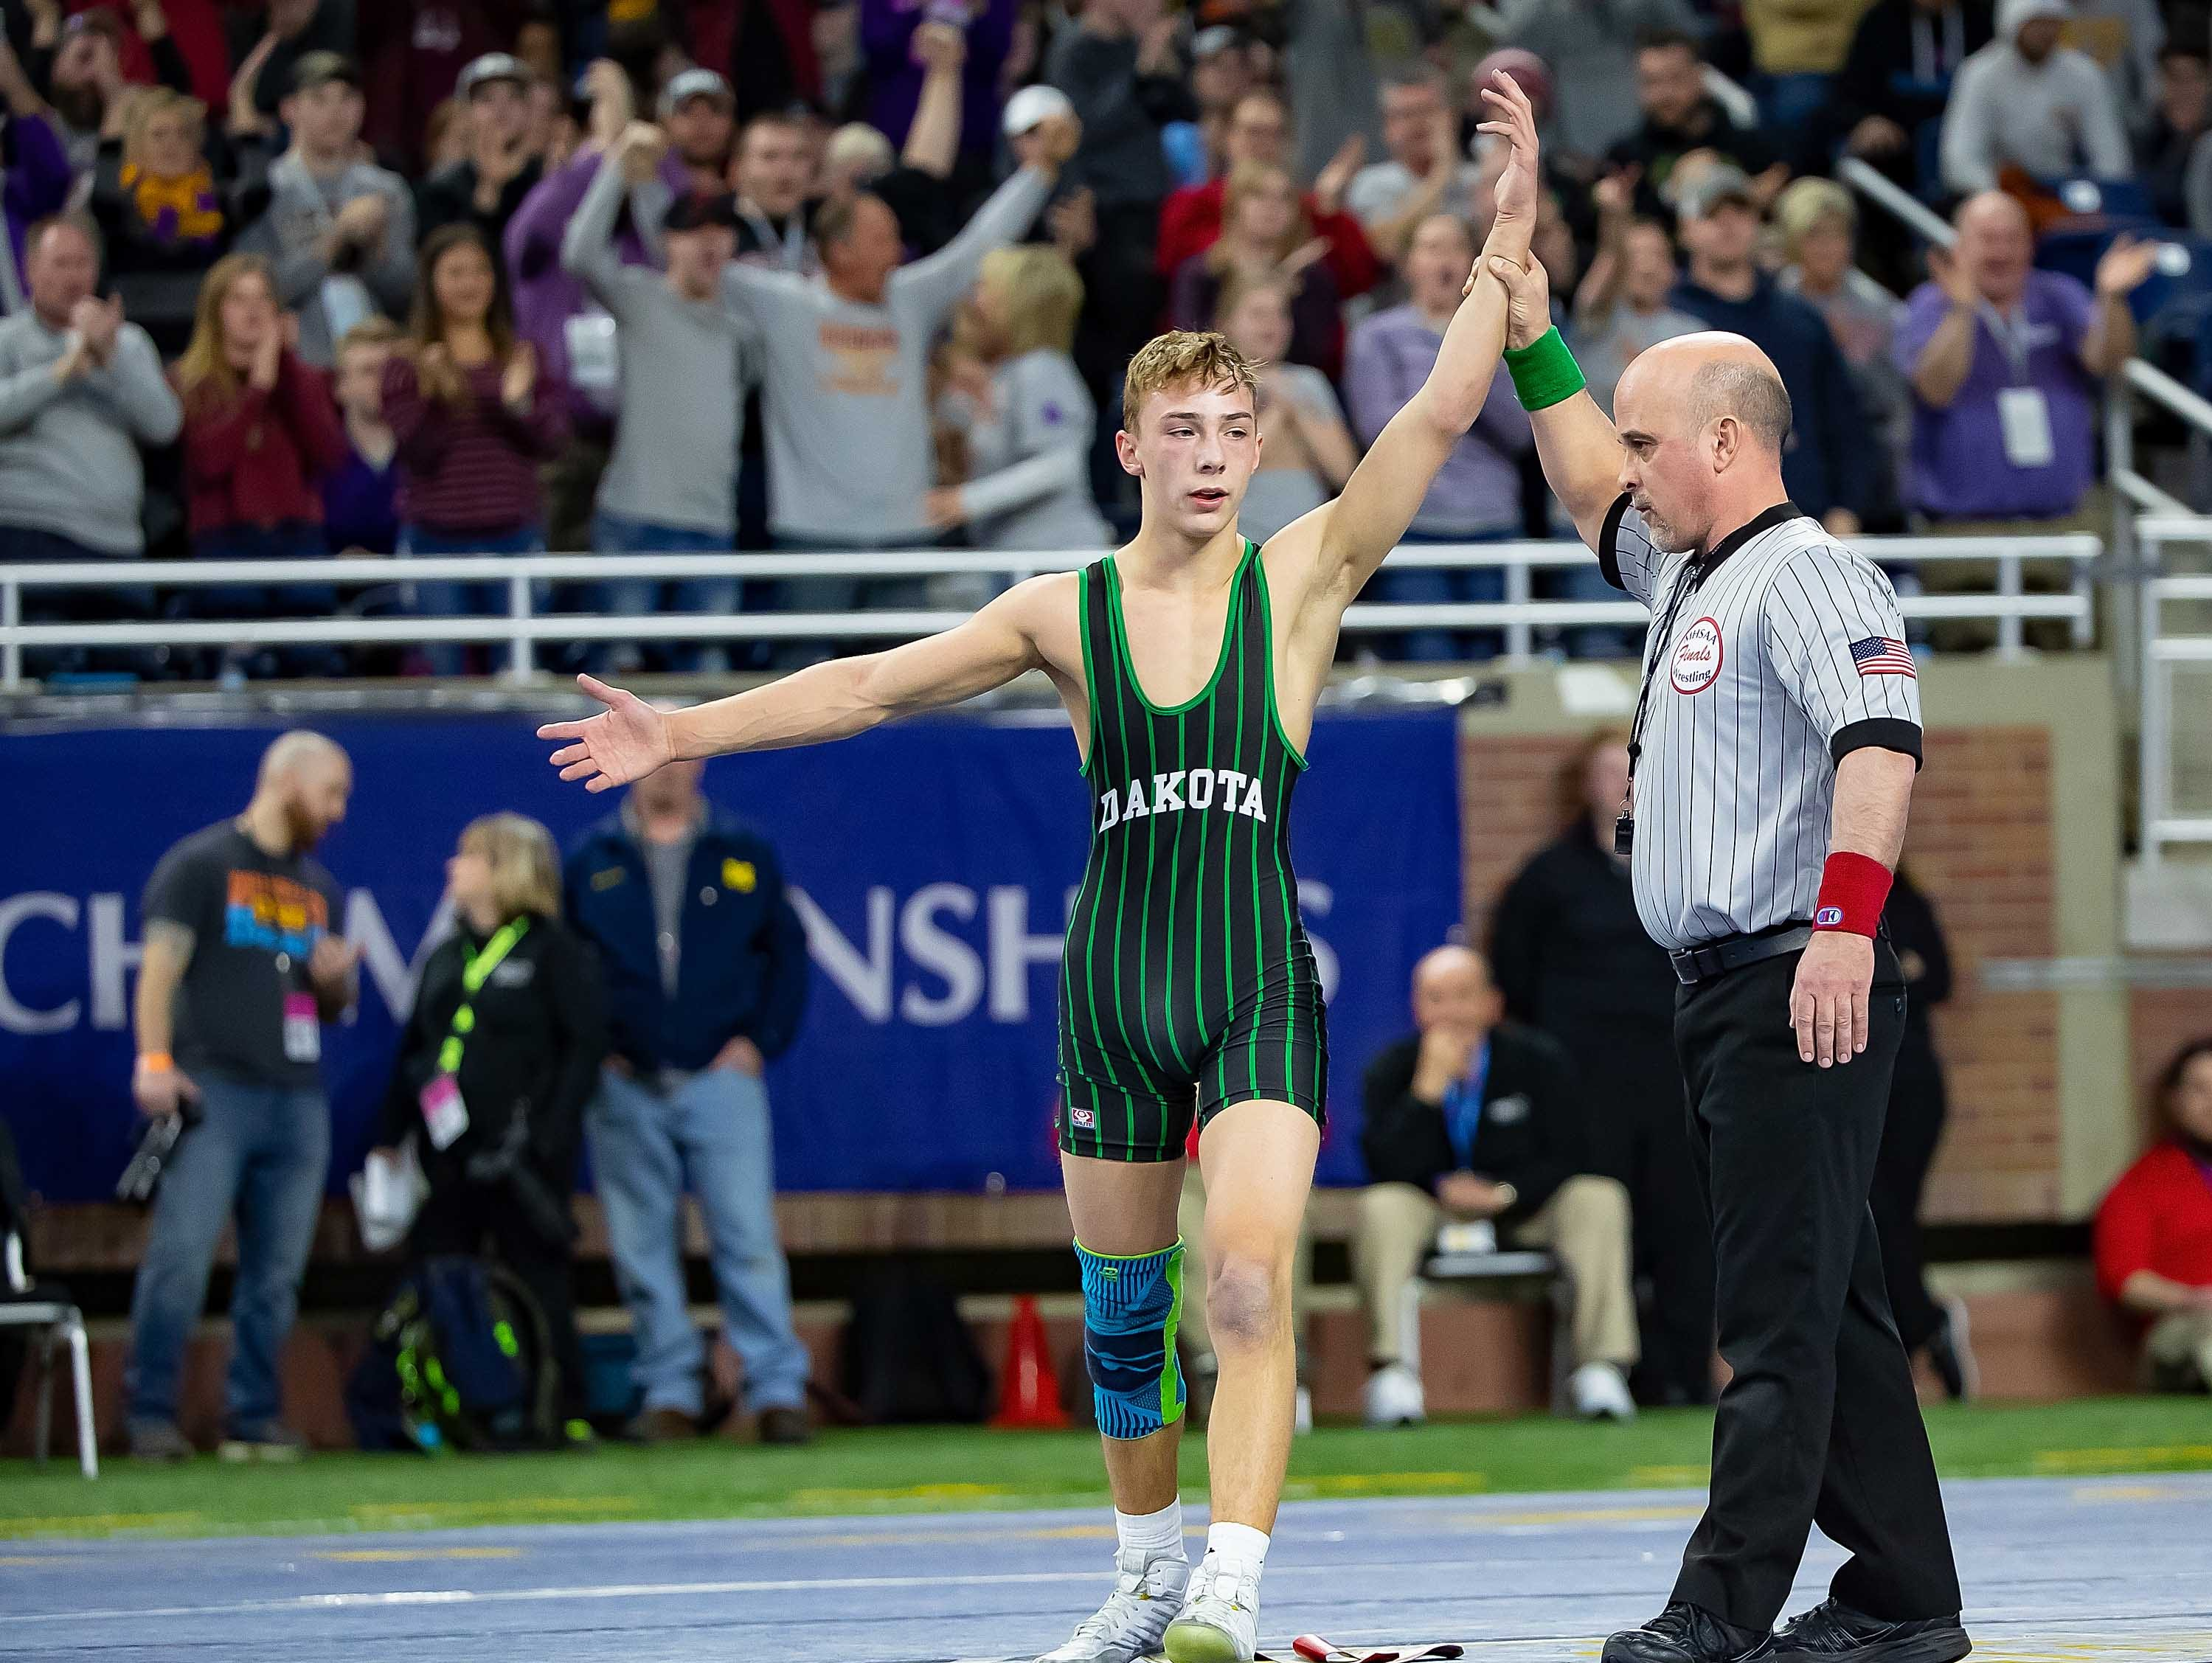 Brendan Ferretti of Macomb Dakota raises his arm in victory after defeating Zein Bazzi of Dearborn Heights Crestwood during their 112-pound Division 1 championship match.